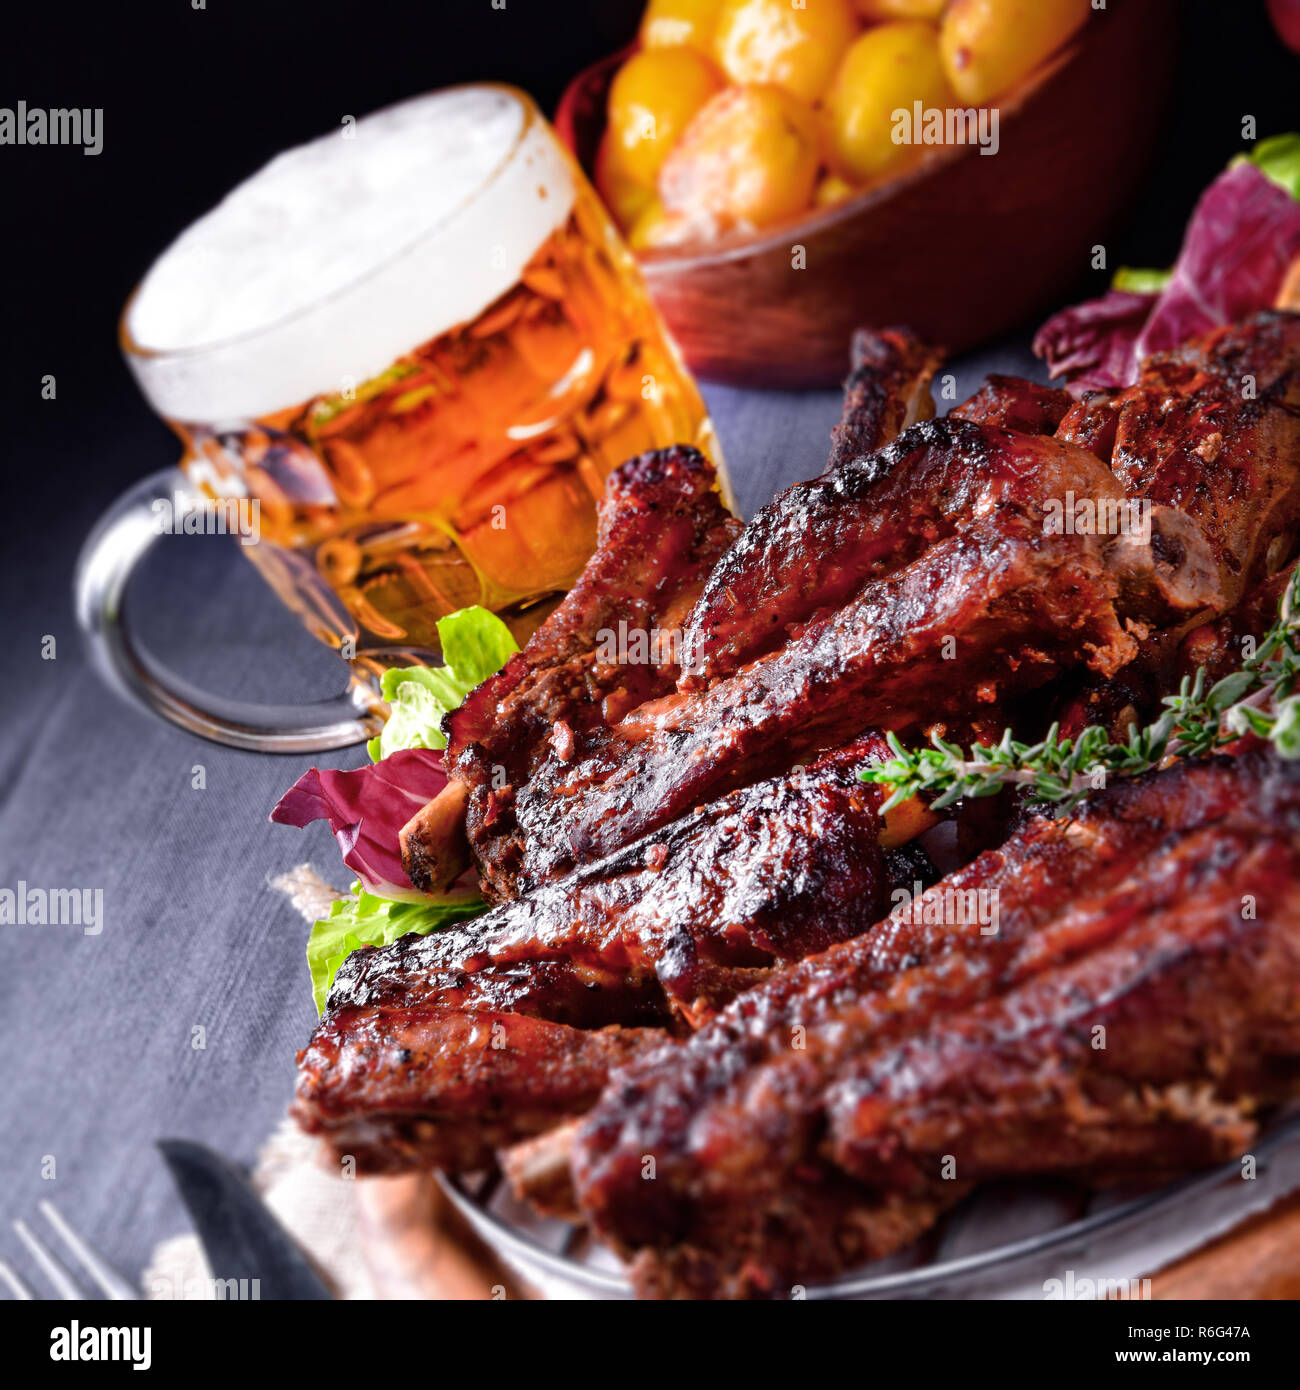 delicious bbq spareribs from the smoker - Stock Image